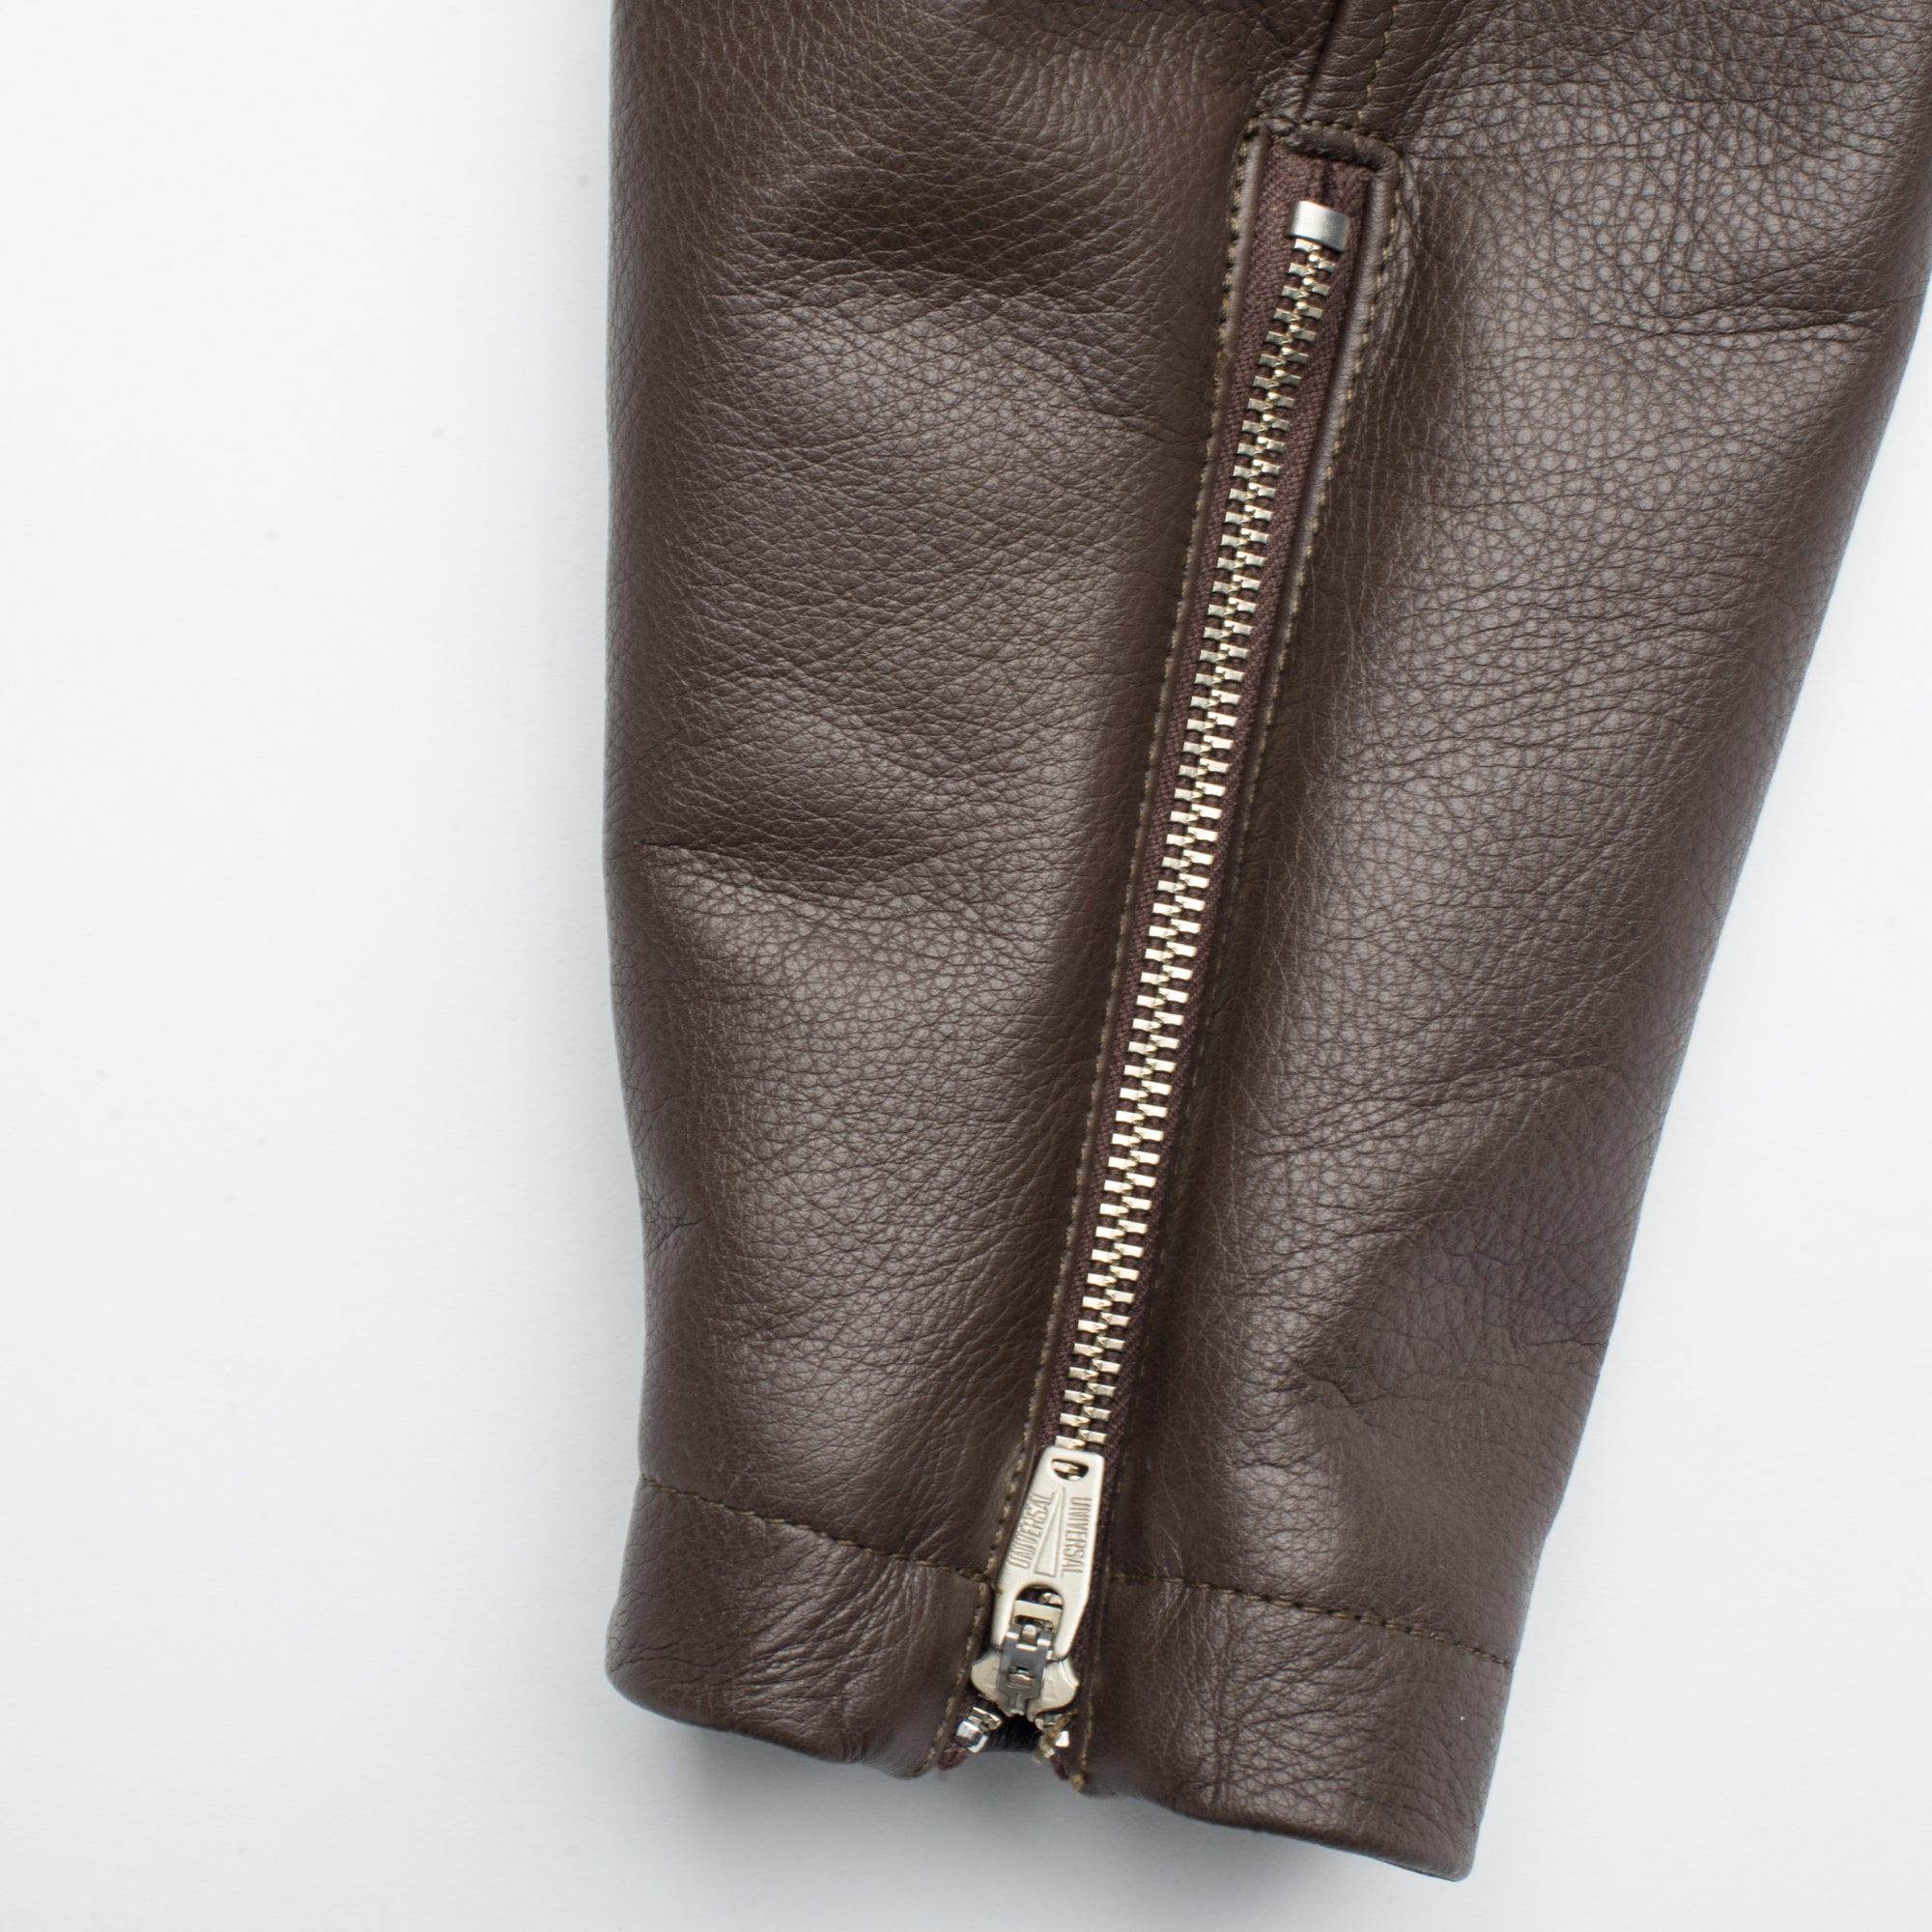 FJ1 Brown Leather Sleeve Zipper